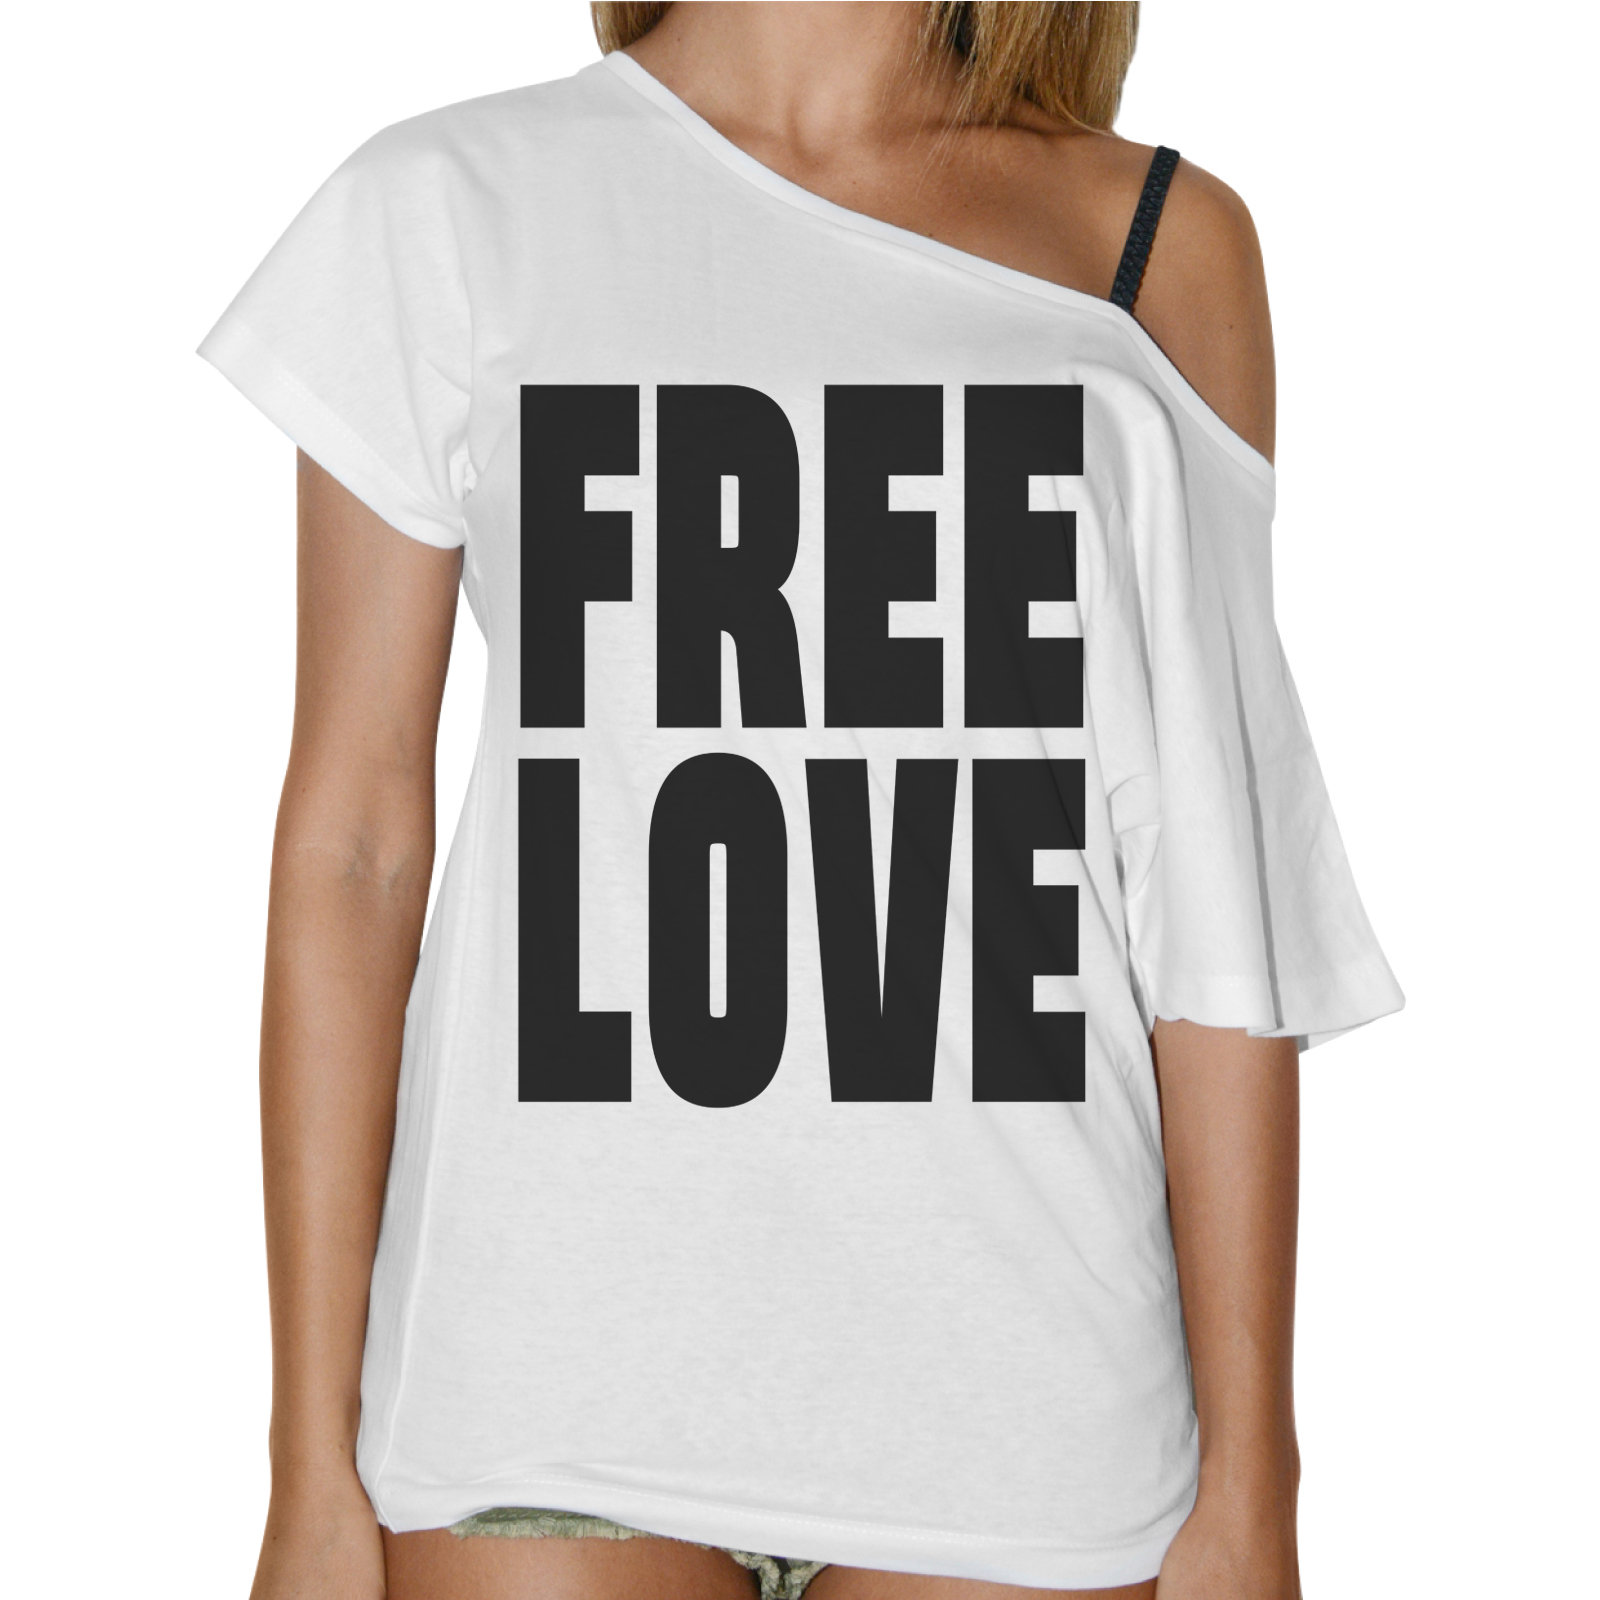 T-Shirt Donna Collo Barca FREE LOVE